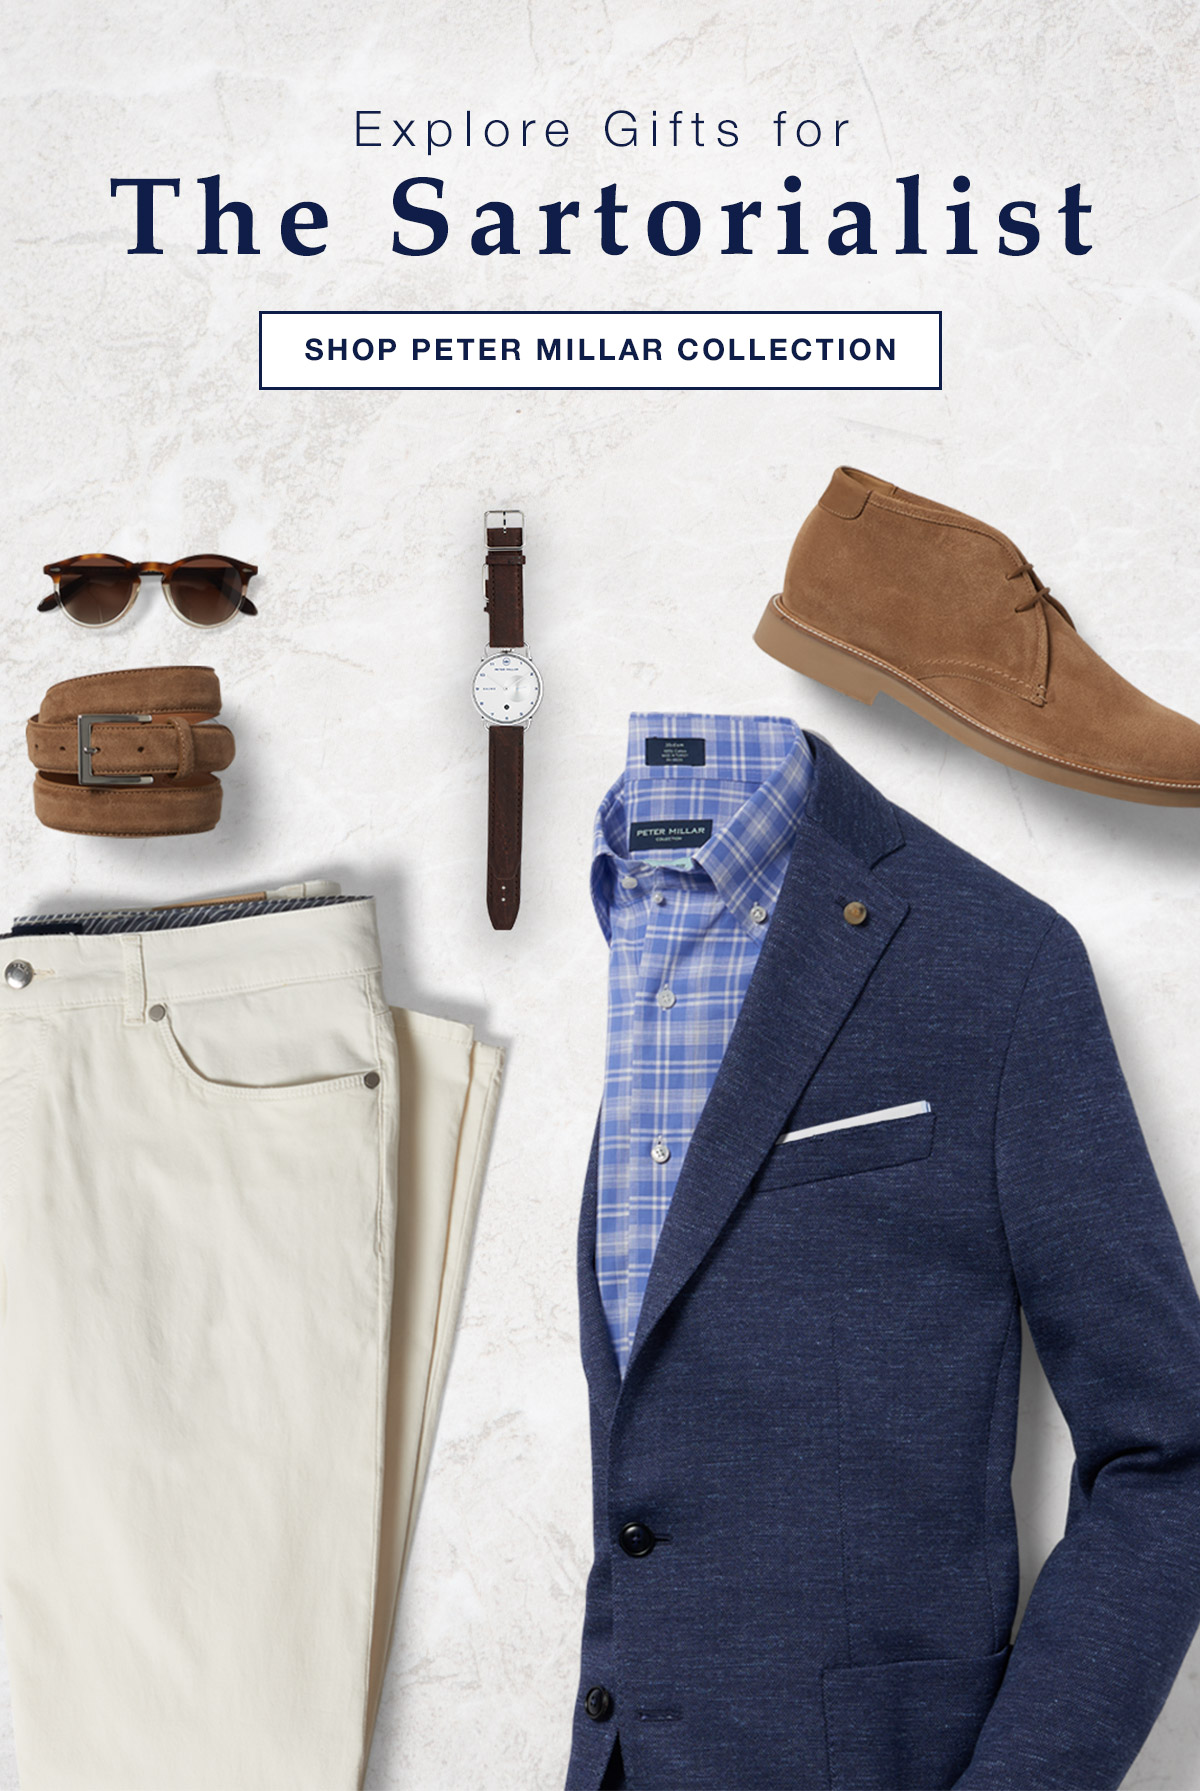 Shop Peter Millar Collection